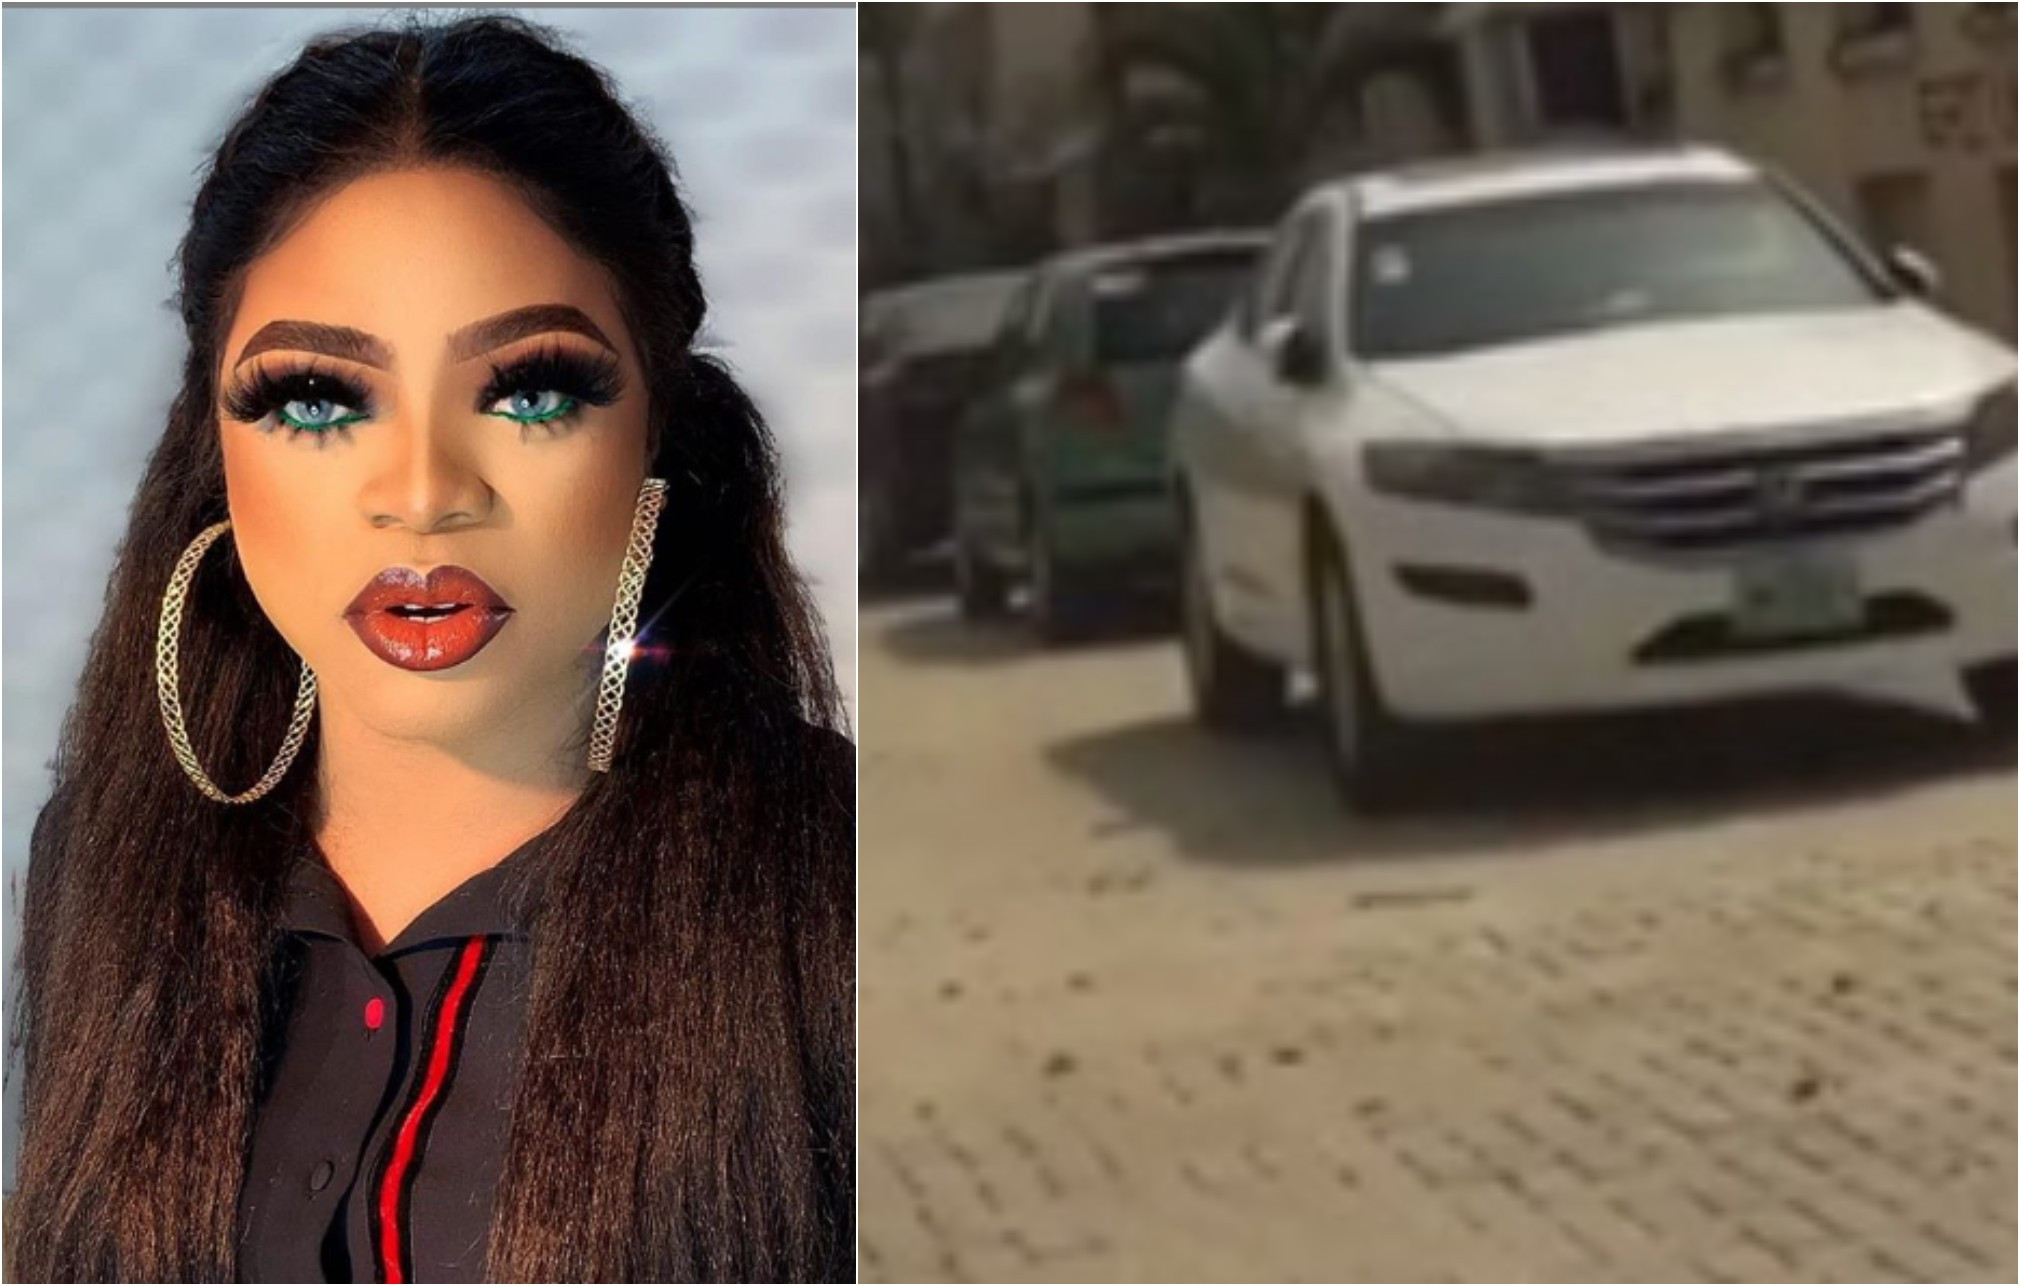 No soldier arrested me or collected my cars - Bobrisky